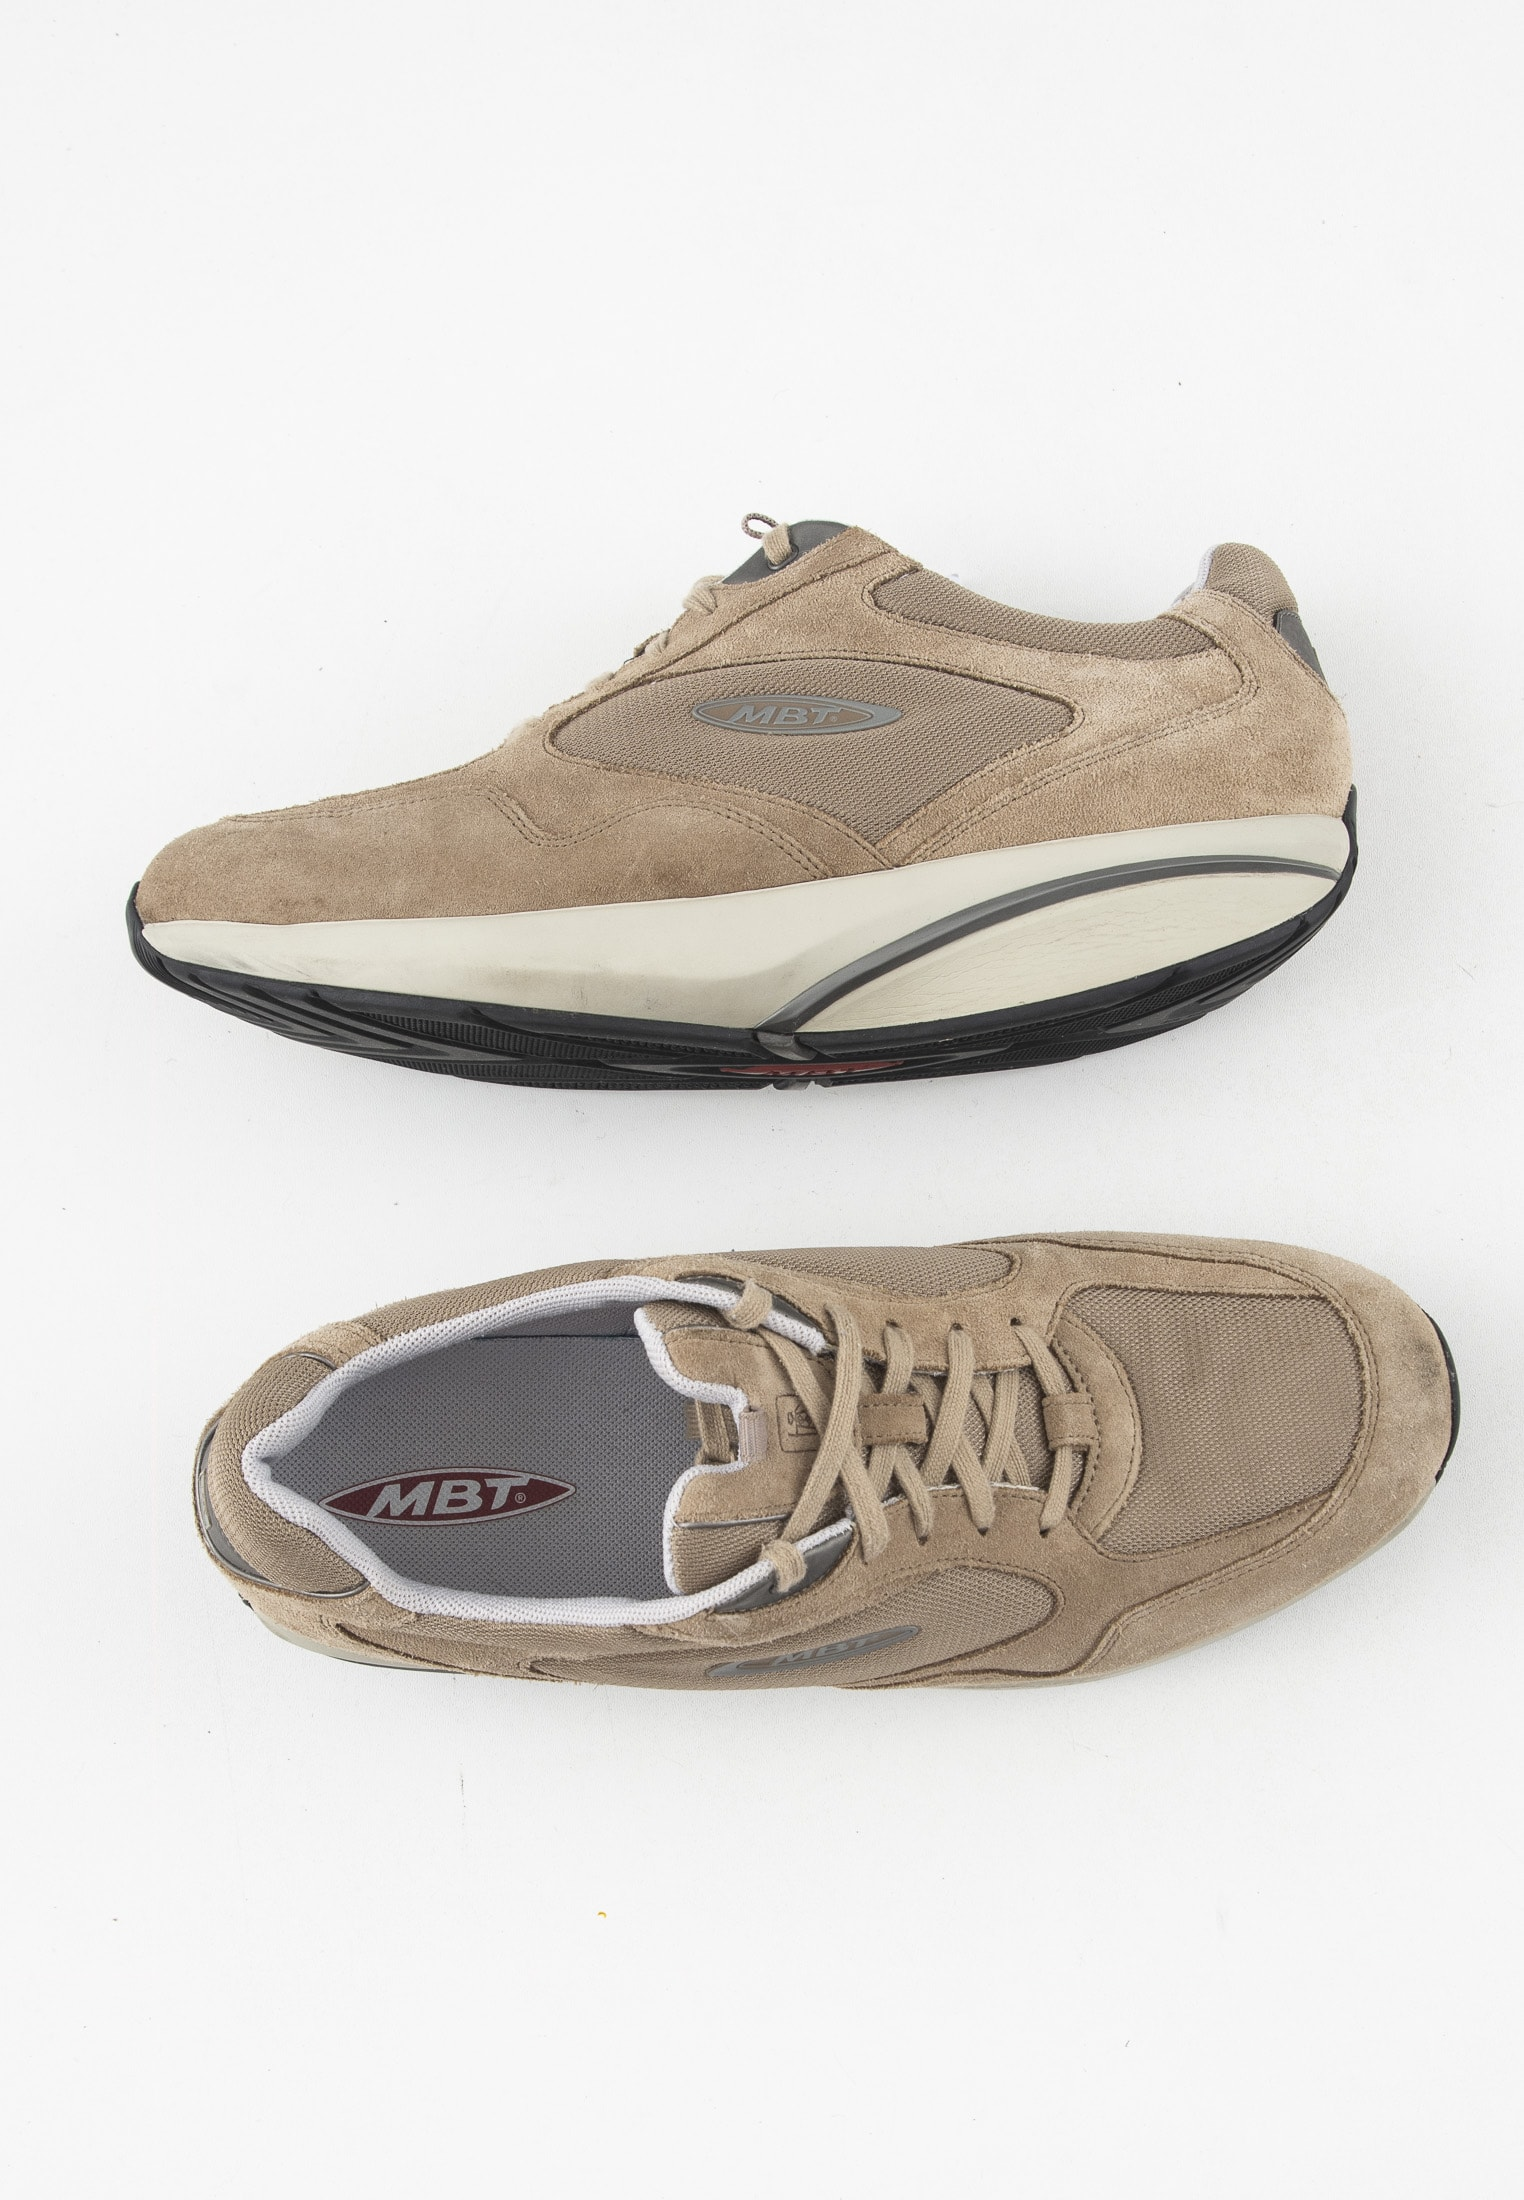 MBT sneakers, beige, 43